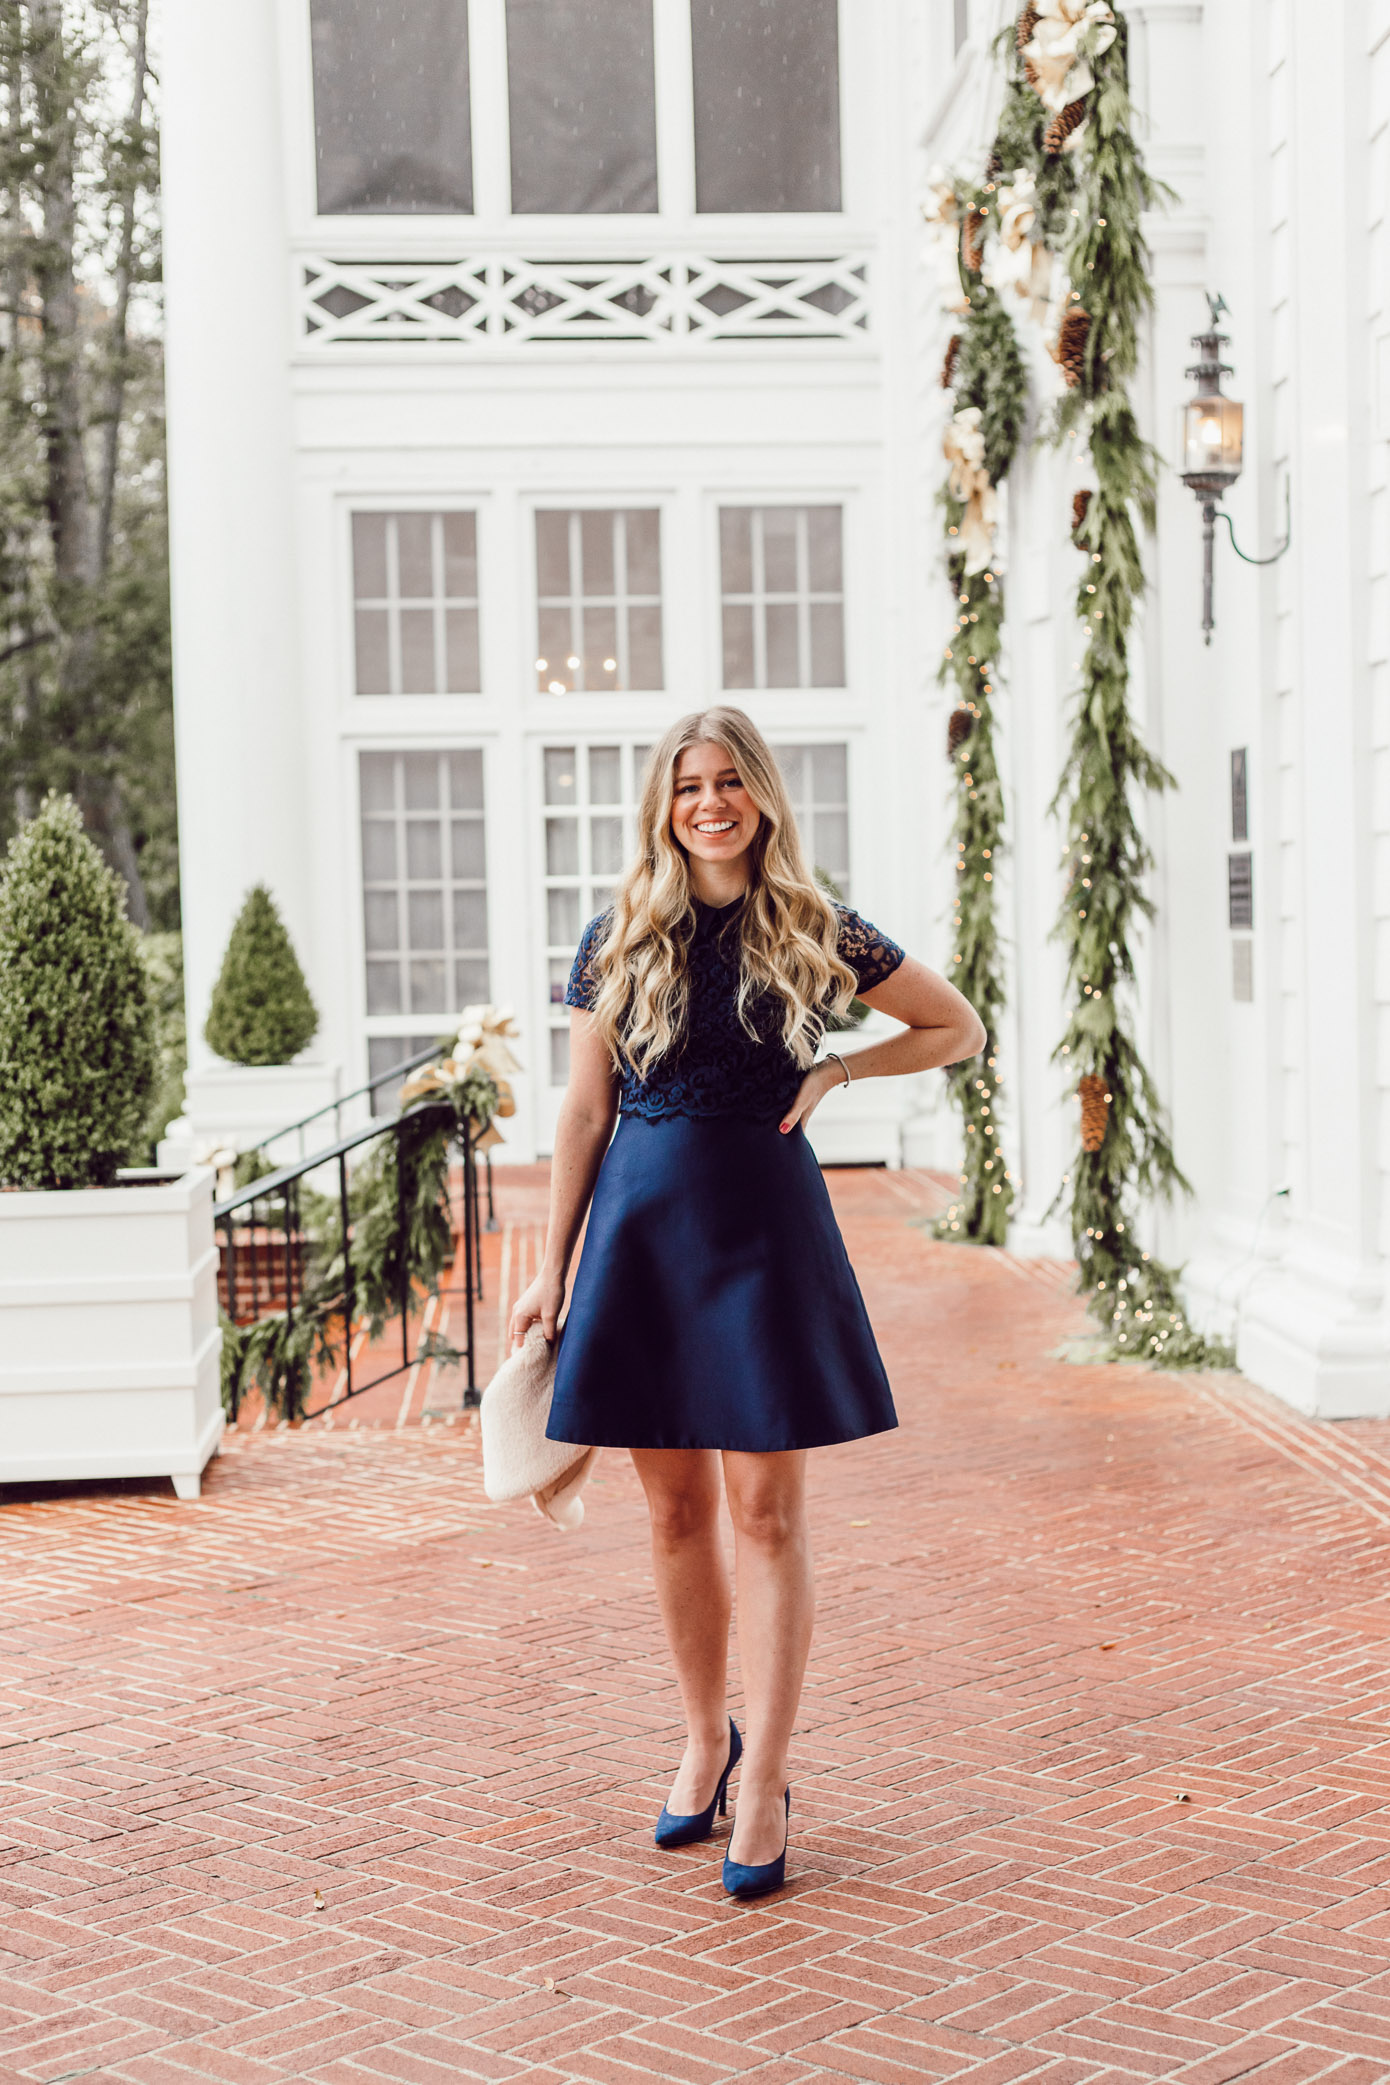 Finding the Perfect Holiday Party Dress with Rent the Runway on Louella Reese Blog | Navy Lace Mini Dress, Christmas Party Dress